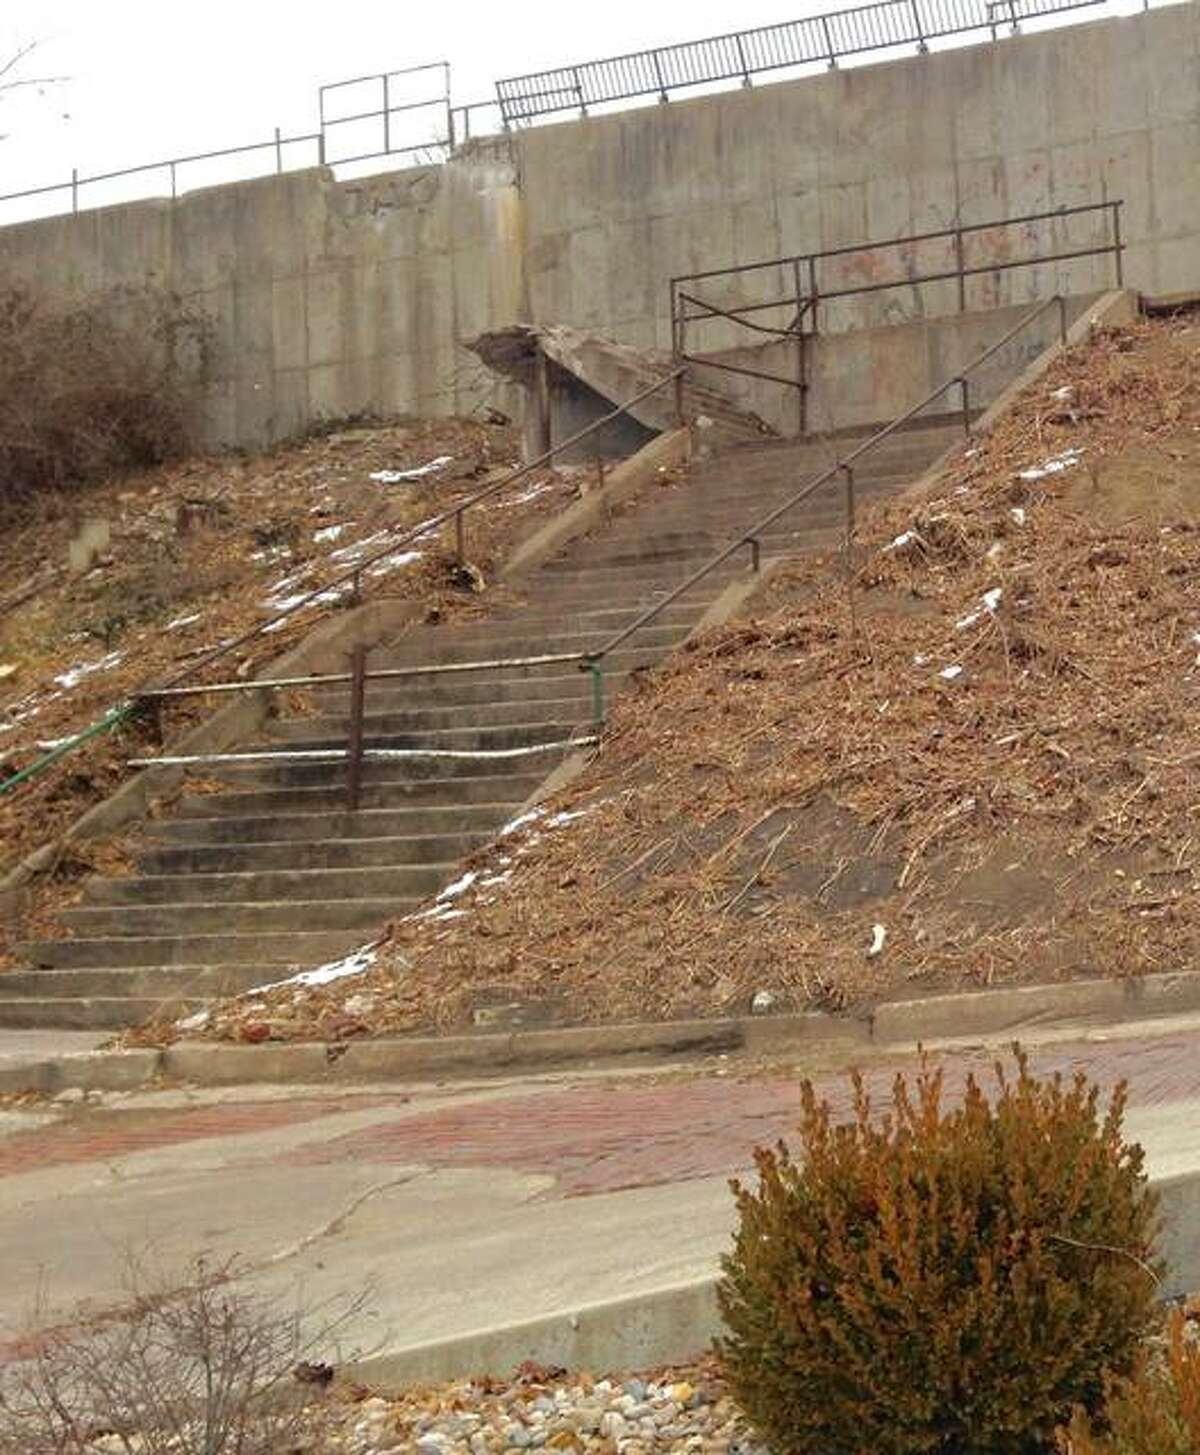 Alton Public Works and Park departments' workers recently cleared a hill of some plant growth Downtown by Fourth Street, below Market Street, to determine what repairs are needed to a graffiti-defaced wall, staircase that ends mid-air and a sidewalk that runs from the steps to the south.